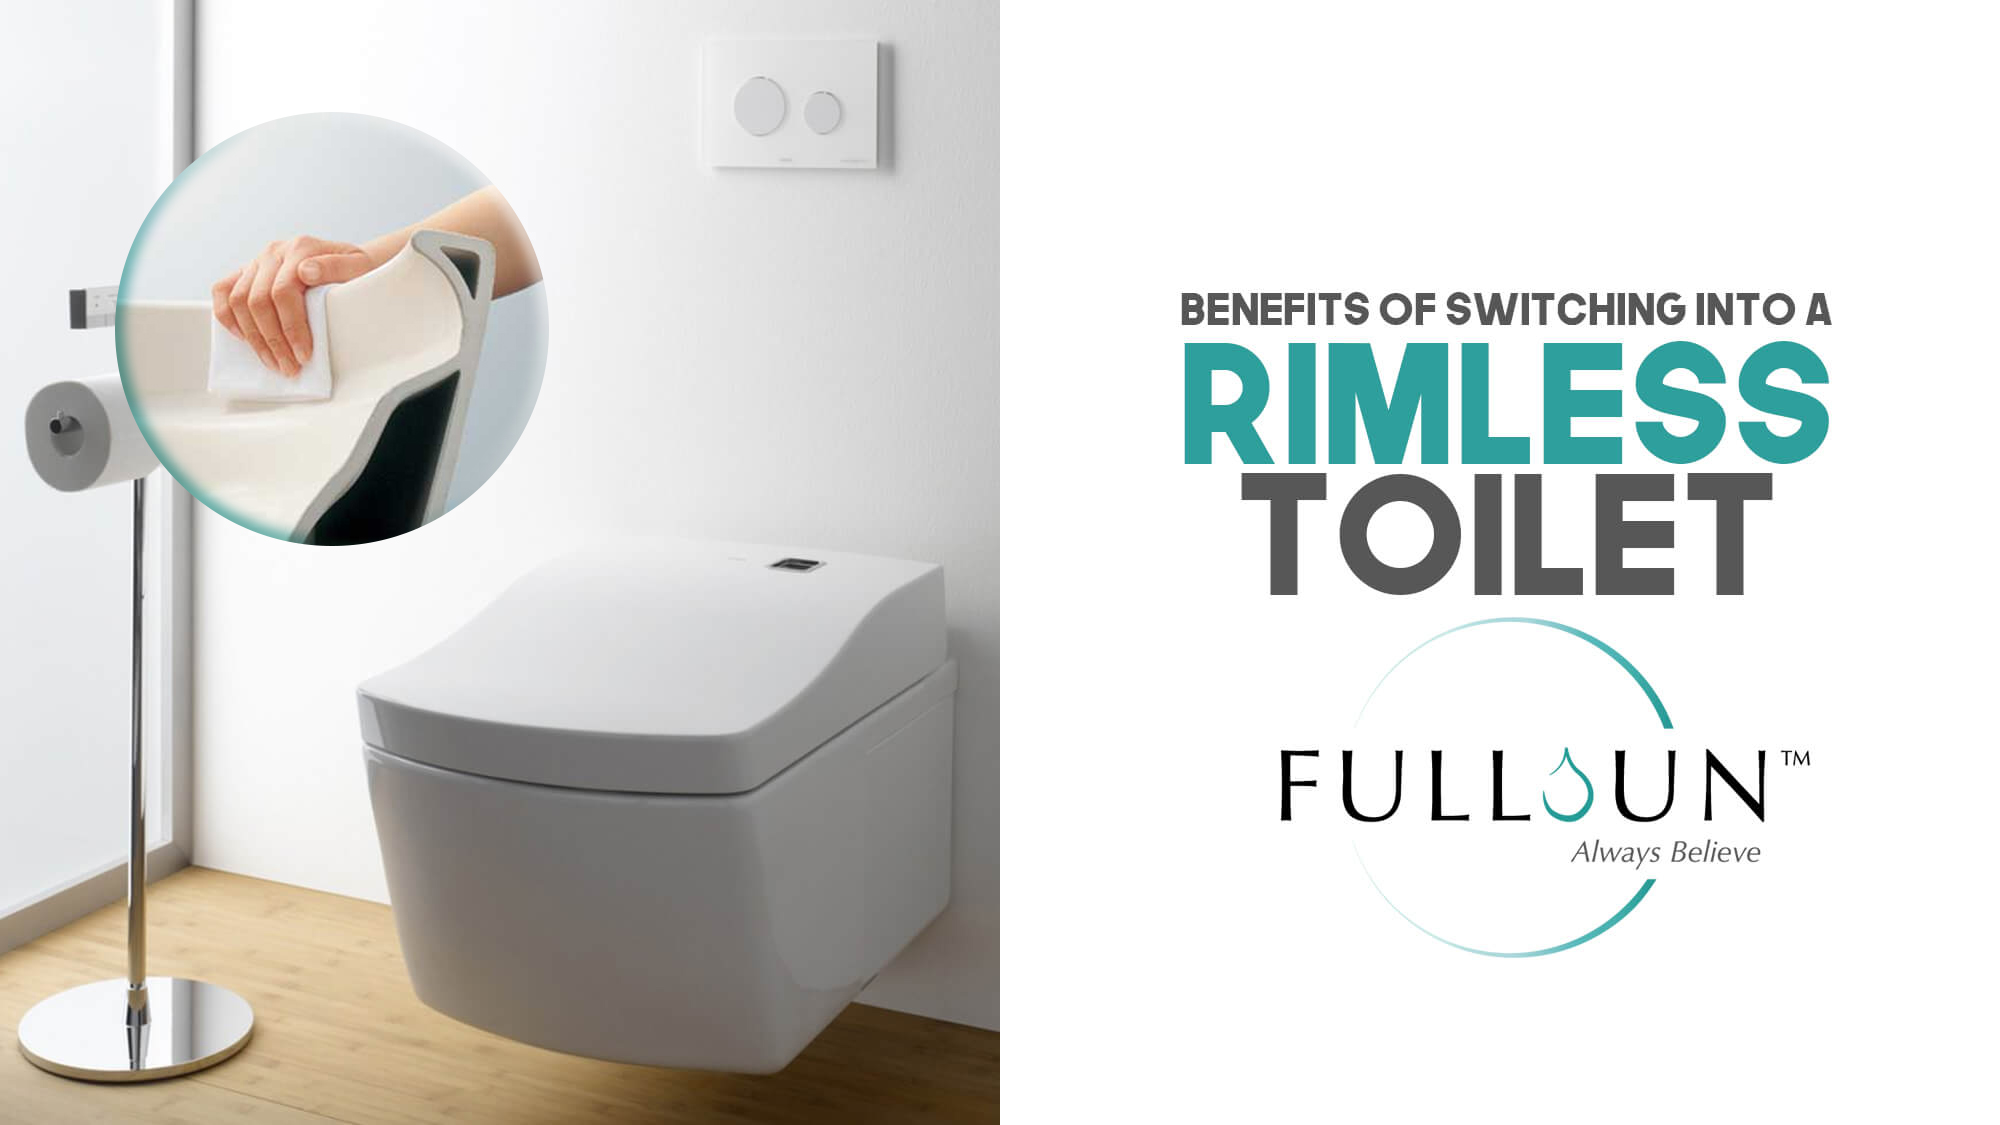 Rimless toilets direct flush technique that evenly and effectively cleans the entire pan, you'll only have to flush once!